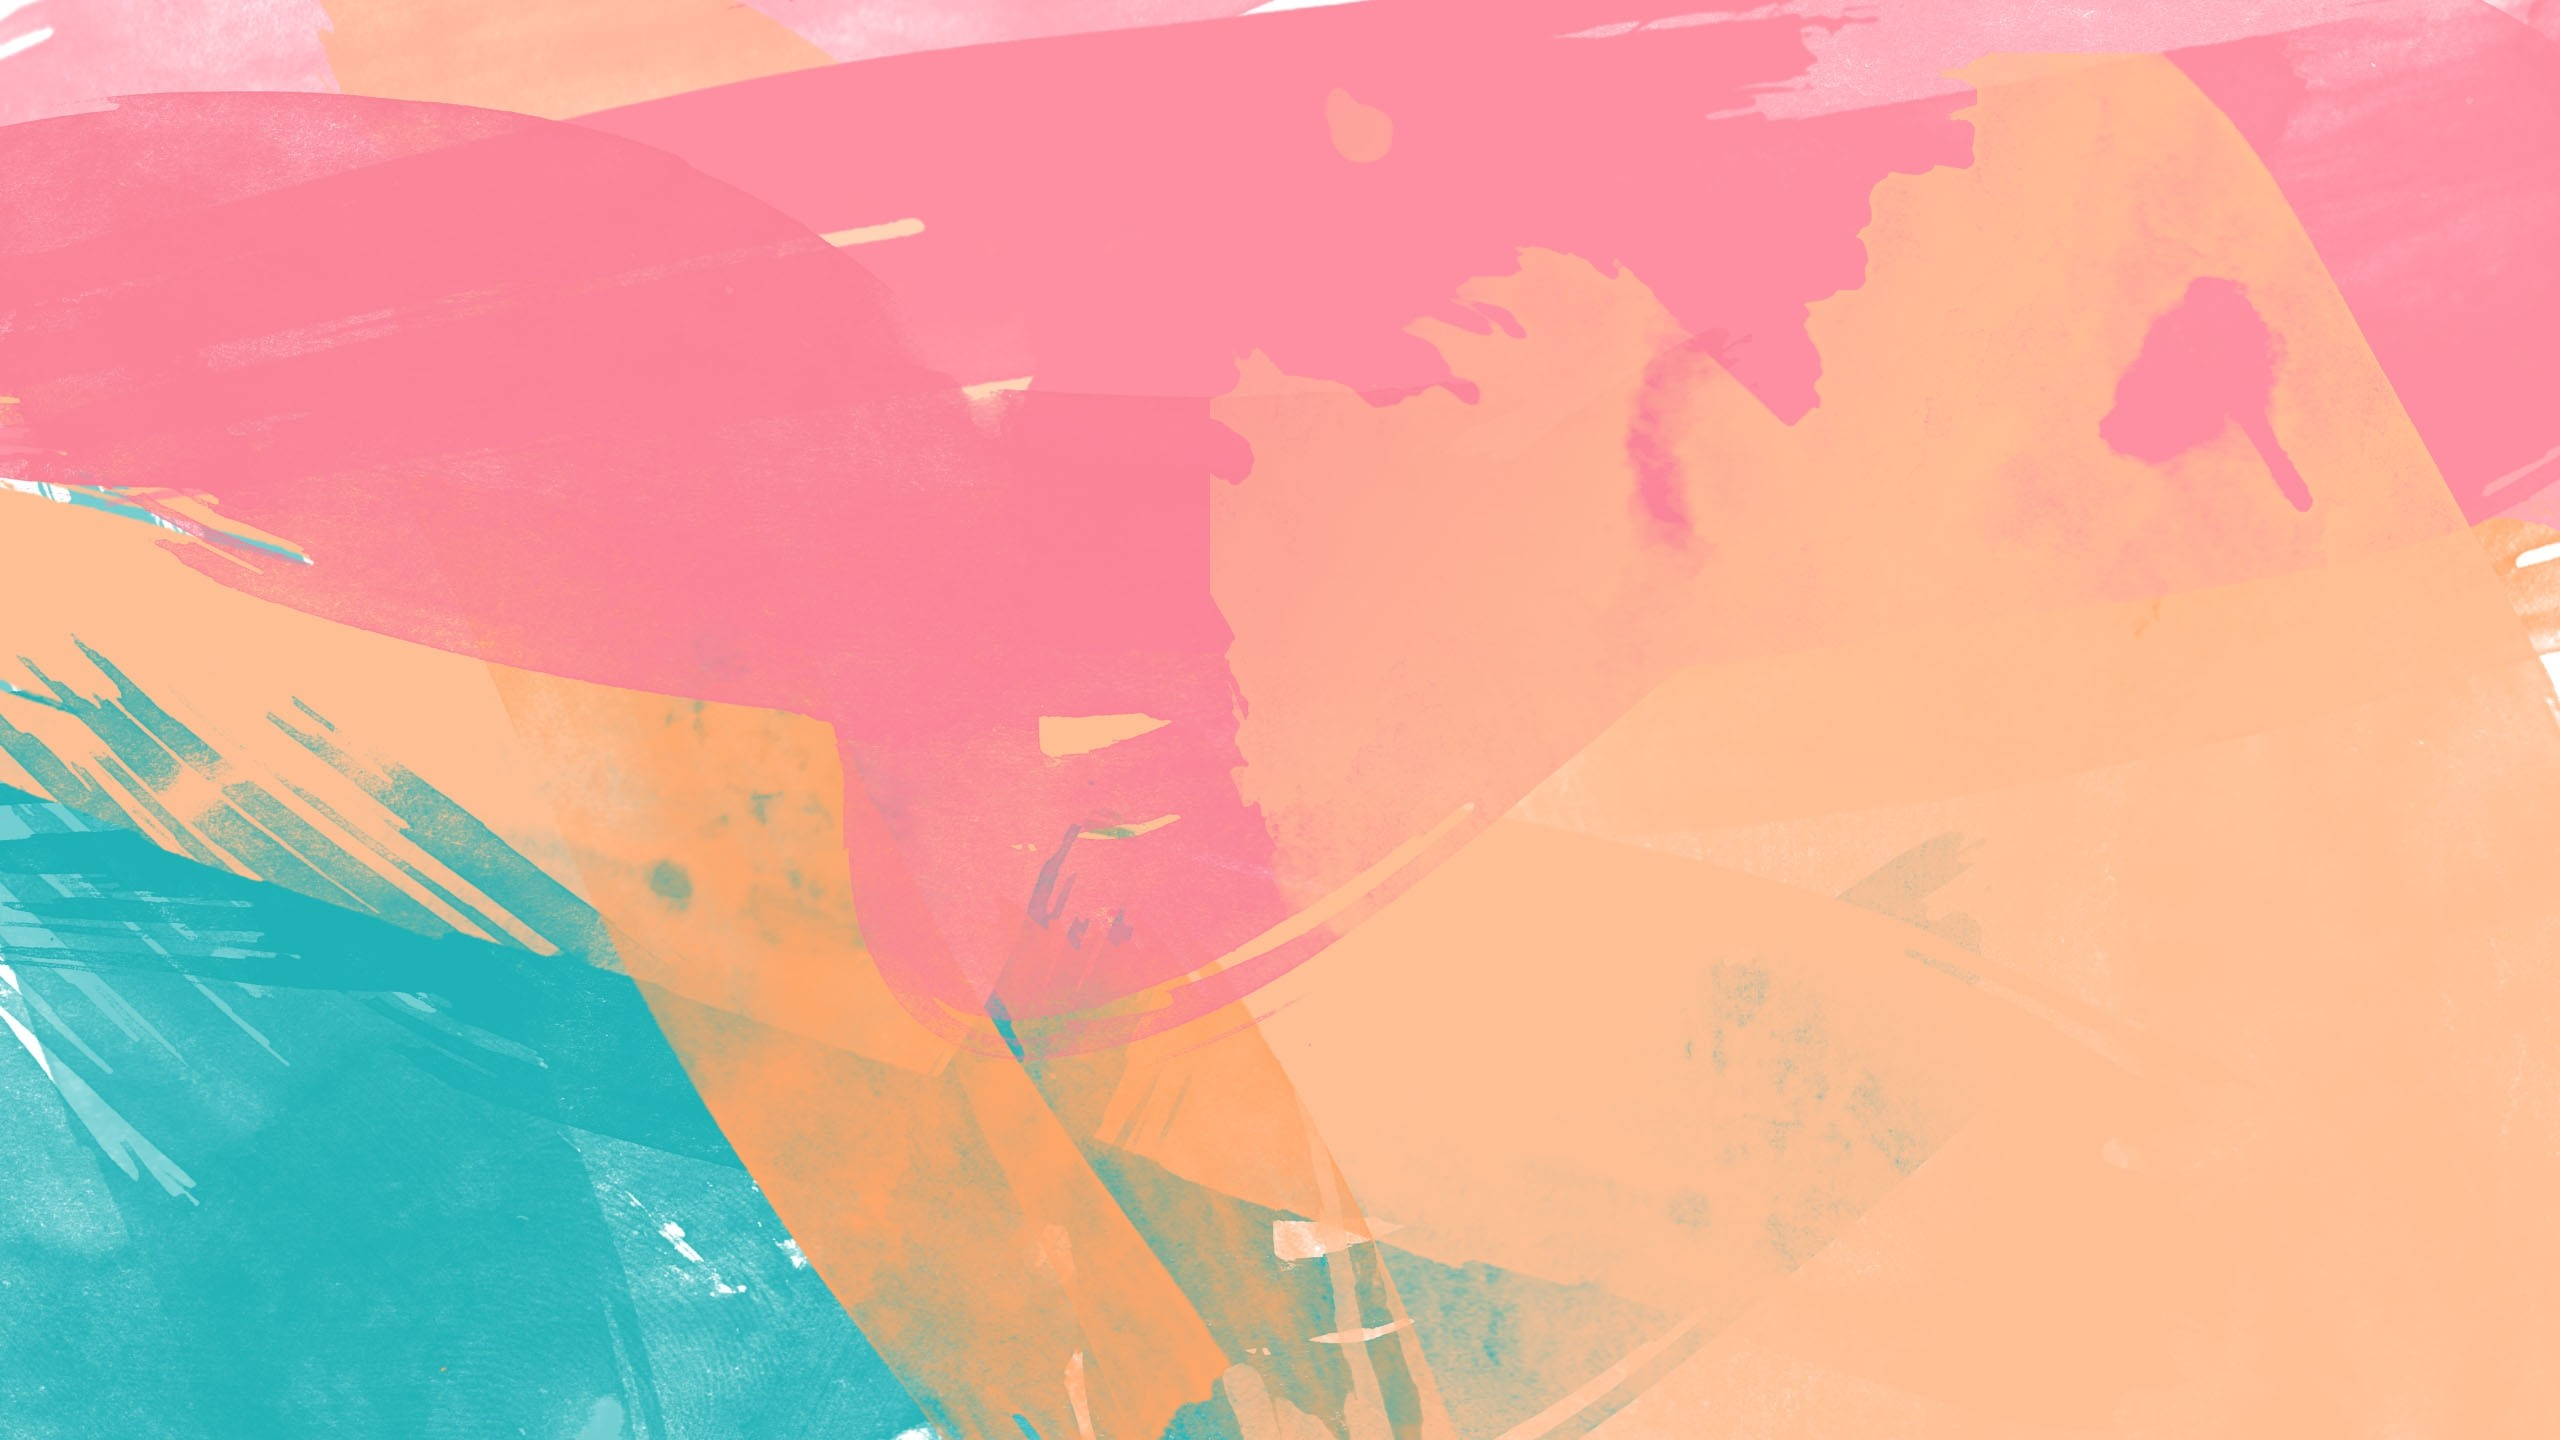 Colorful background designs 44 images 1920x1080 animation of color painting or watercolor ink dripping and splattering on dusty paper and create a colorful background pattern texture in 4k voltagebd Gallery